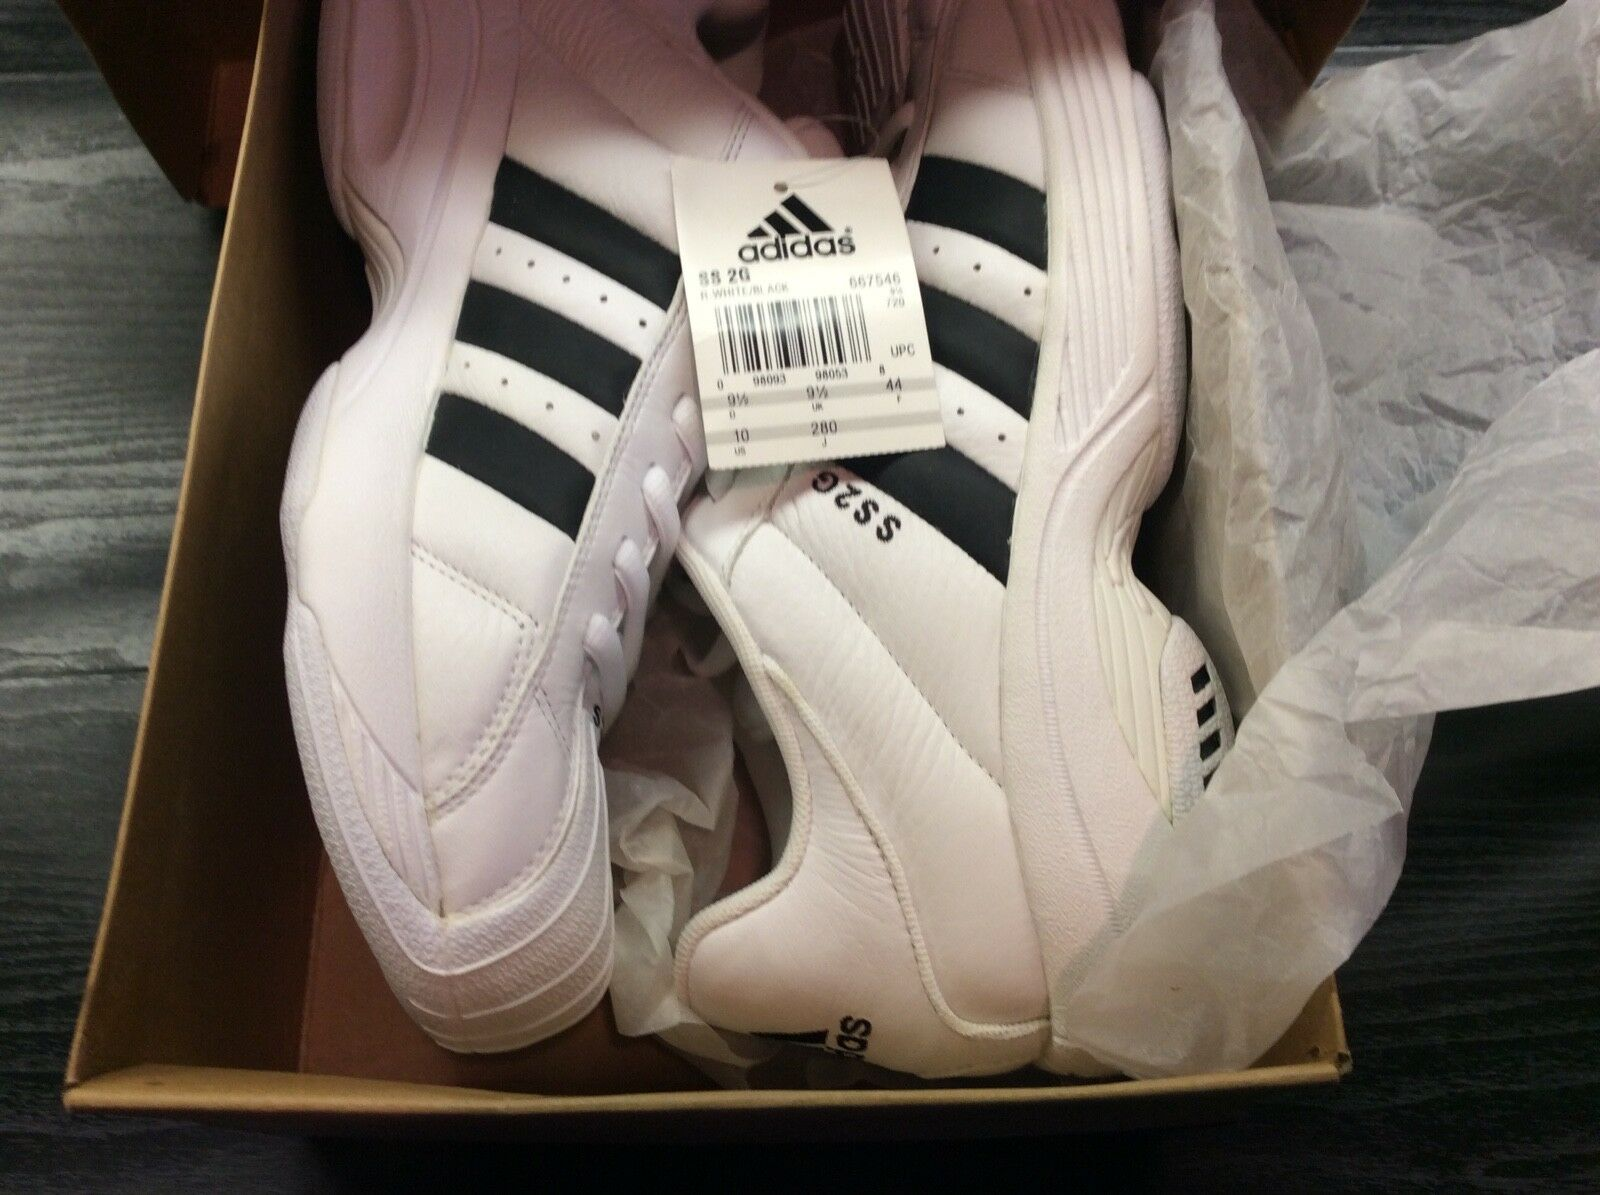 Men's US 10 adidas Superstar 2G Supreme NIB with tags early label Dec 2000